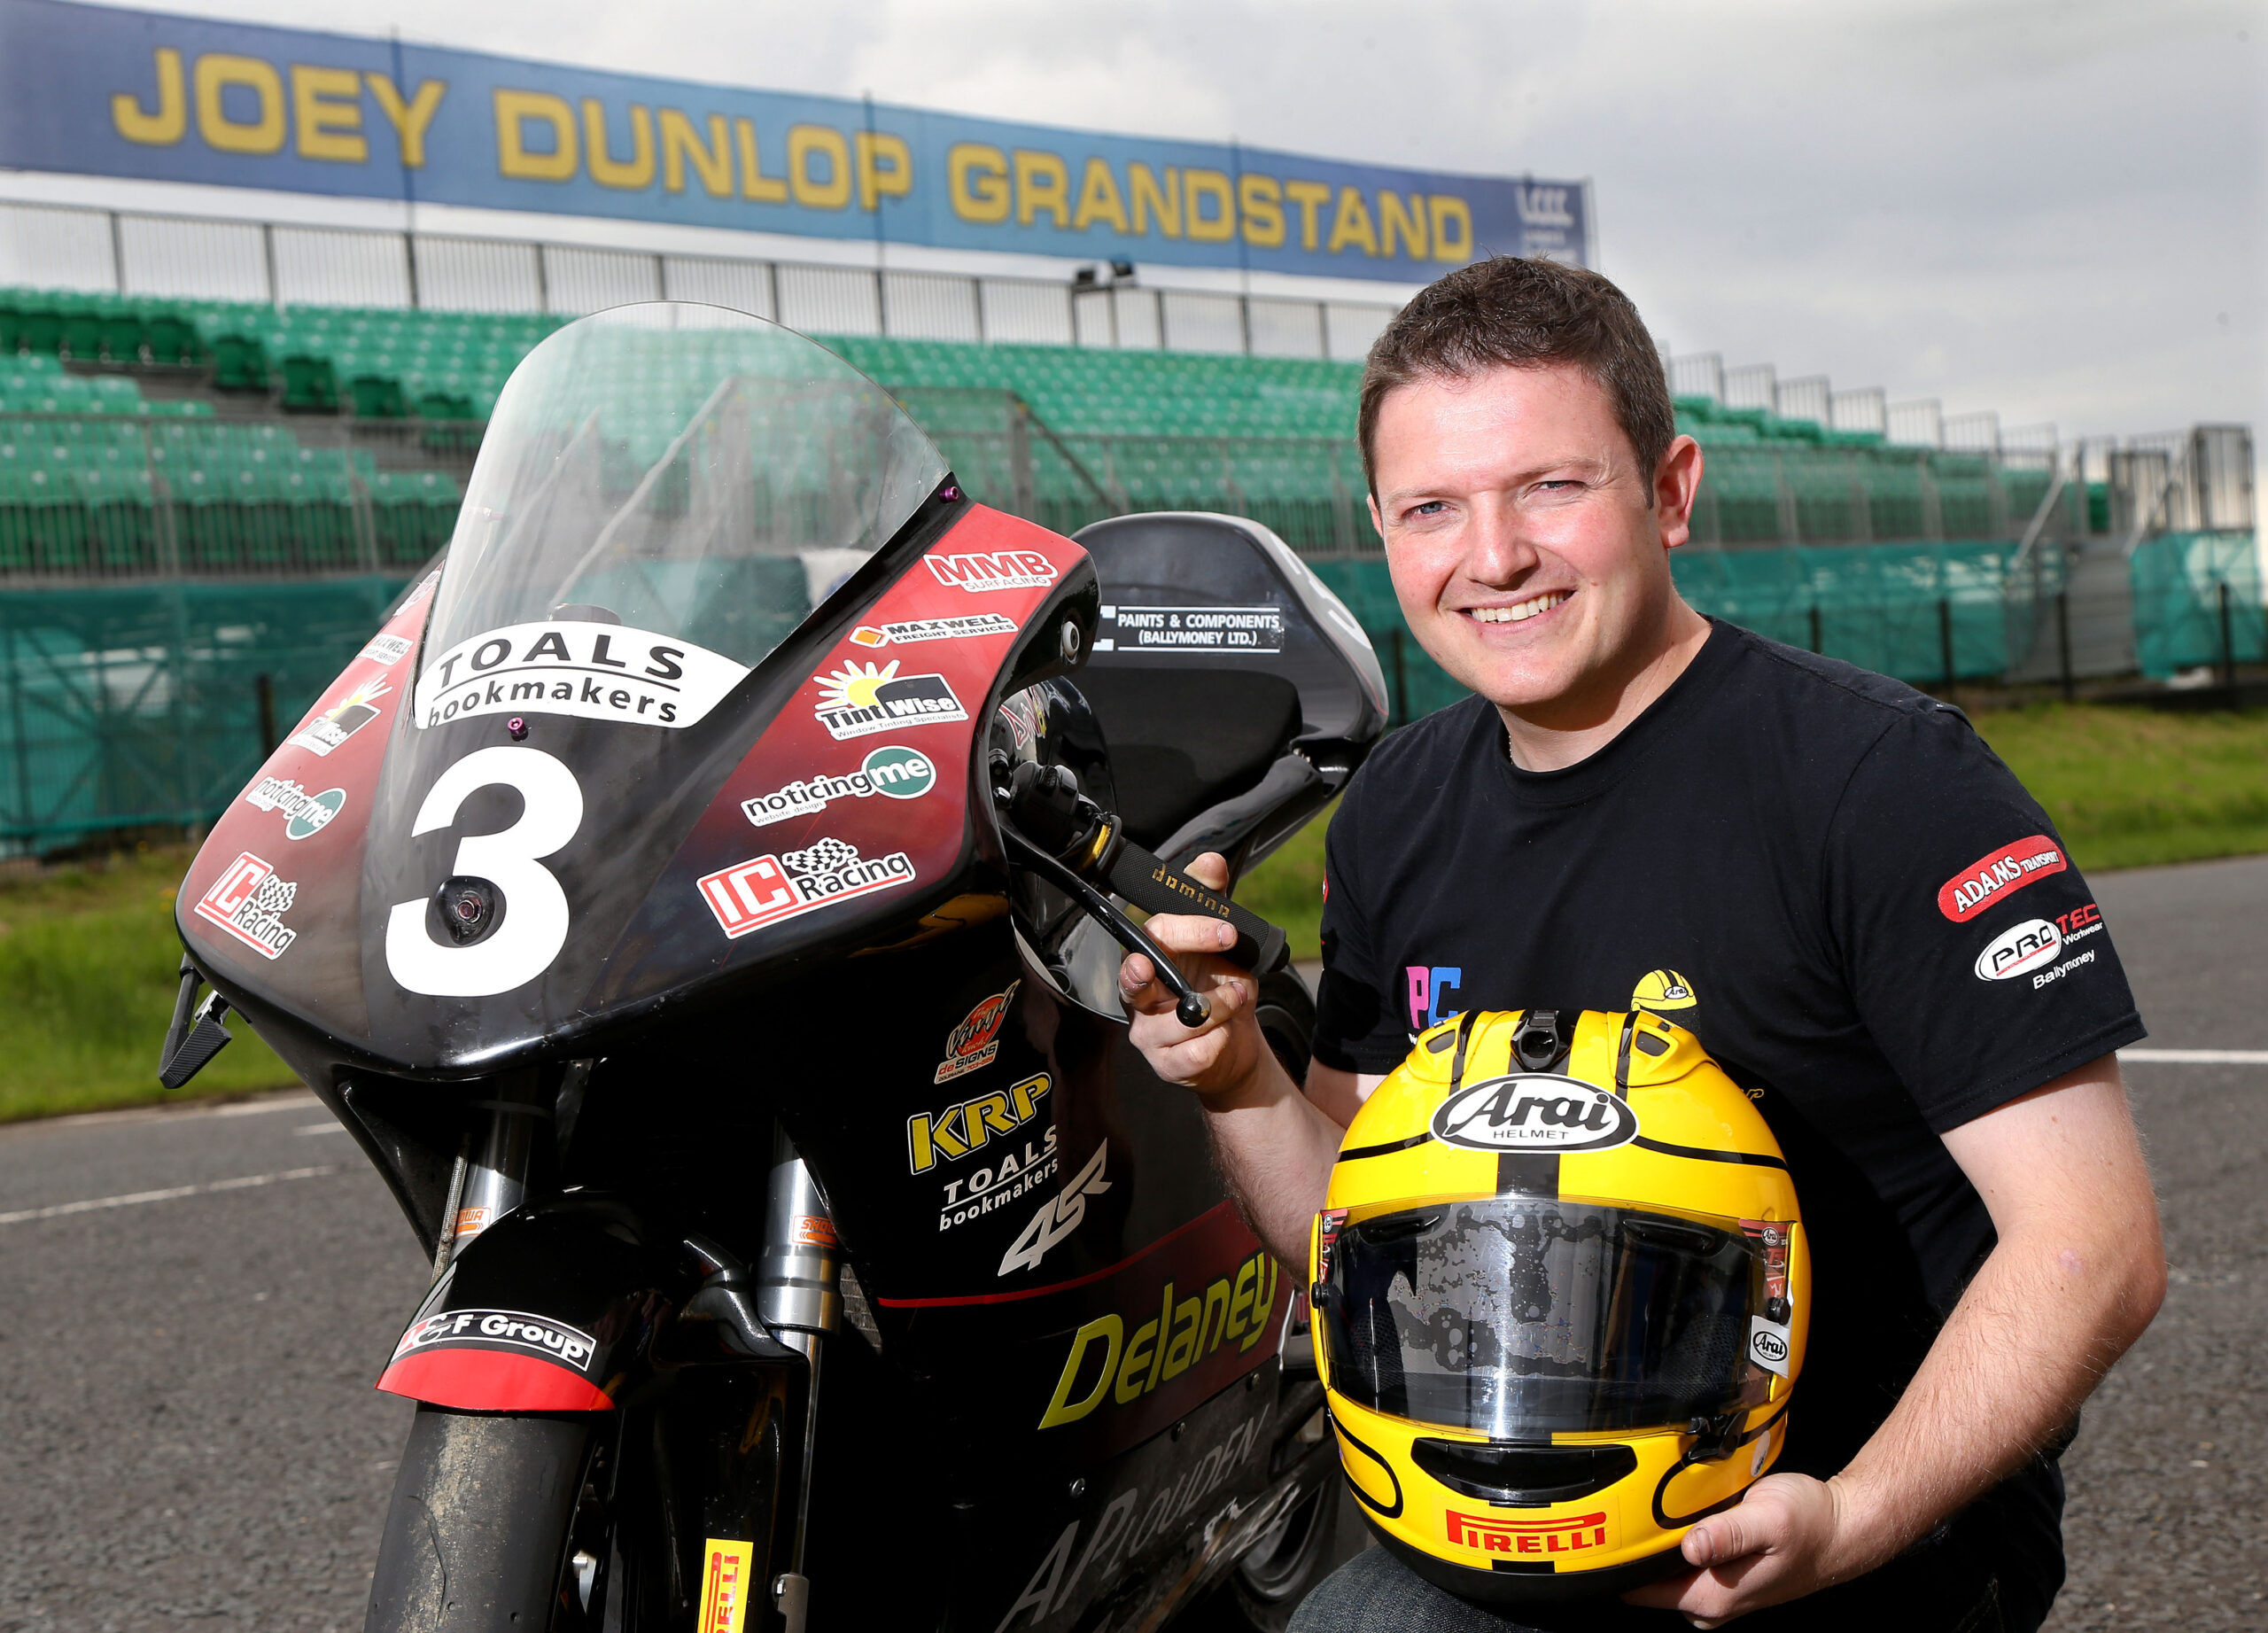 Gary Dunlop All Set For Ulster Grand Prix Debut